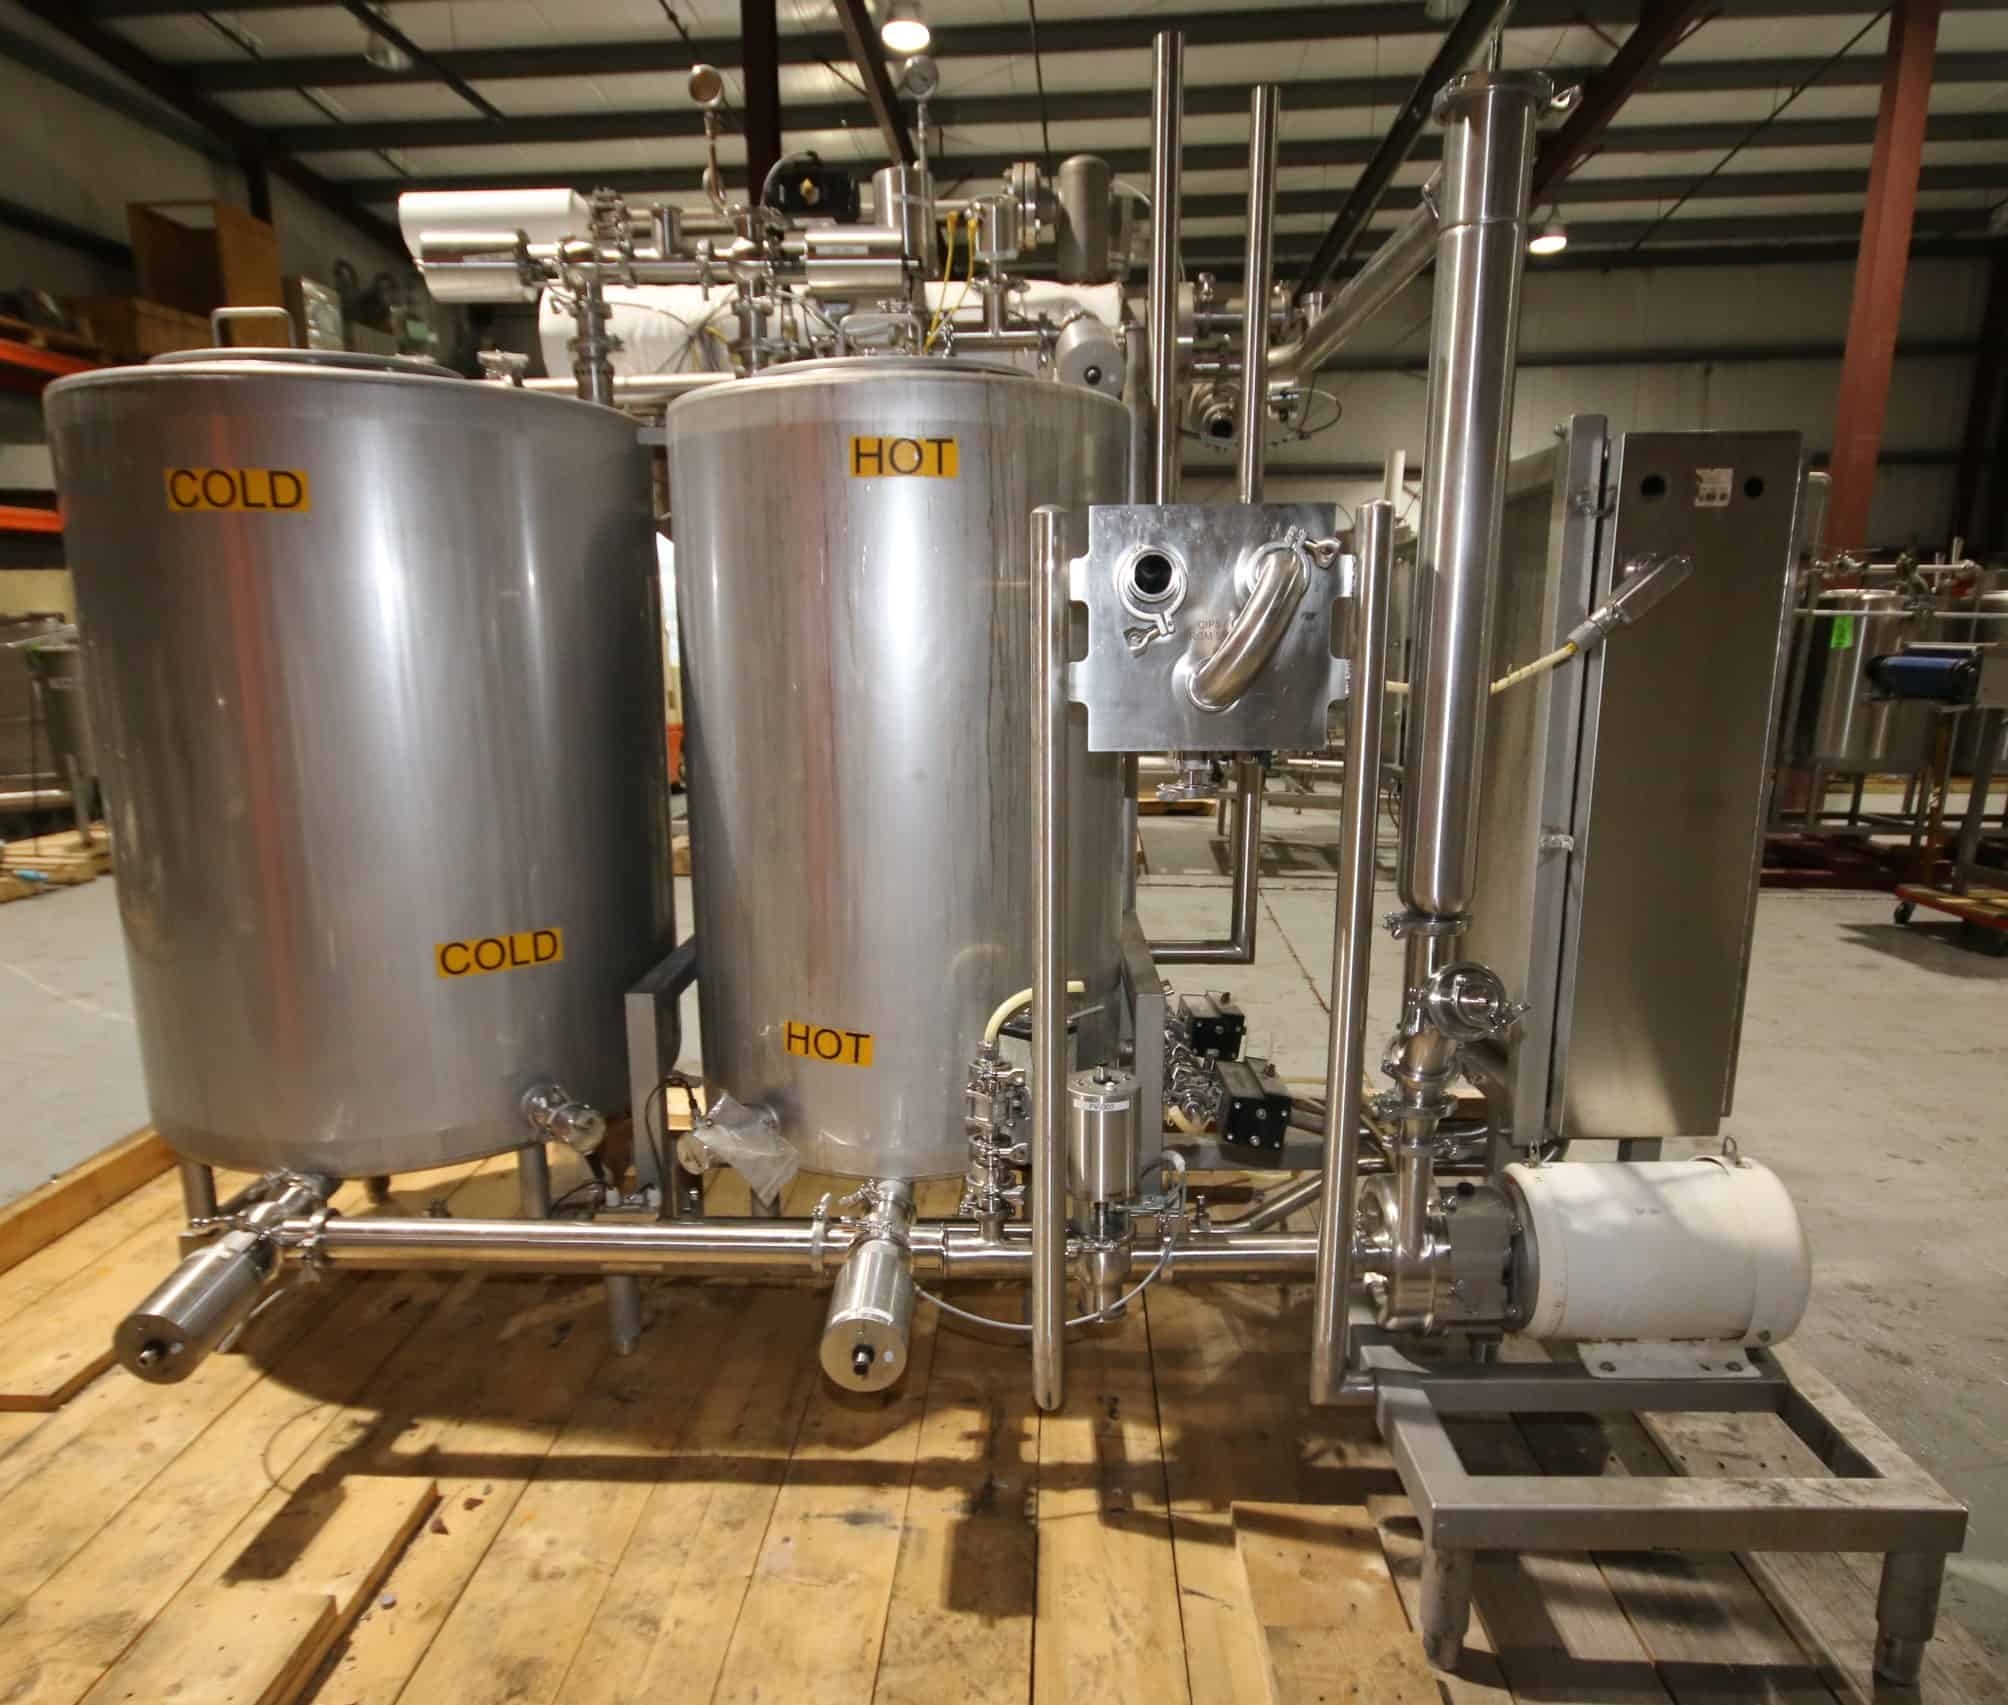 "2011 Skid Mounted 2-Tank S/S CIP System, with Aprox. 230 Gal. or 48"" H x 38"" W Tank, 140 Gal. or 46"" H x 30"" W Tank, 50"" L x 8"" W S/S Shell & Tube Heat Exchanger, Anderson In-Line Flow Meter with Read-Out, 10 hp / 3525 rpm Centrifugal Pump, (8) Alfa Laval S/S Air Valves, Check Valves, Pneumatic Ball Valves, In-Line Filter, Level Sensors, Pressure Sensors, On-Board Control Panel with Allen Bradley Panelview 1000 Display & Solenoid Valves, (CIP Overall Diam. 112"" L x 80"" W x 93"" H)"